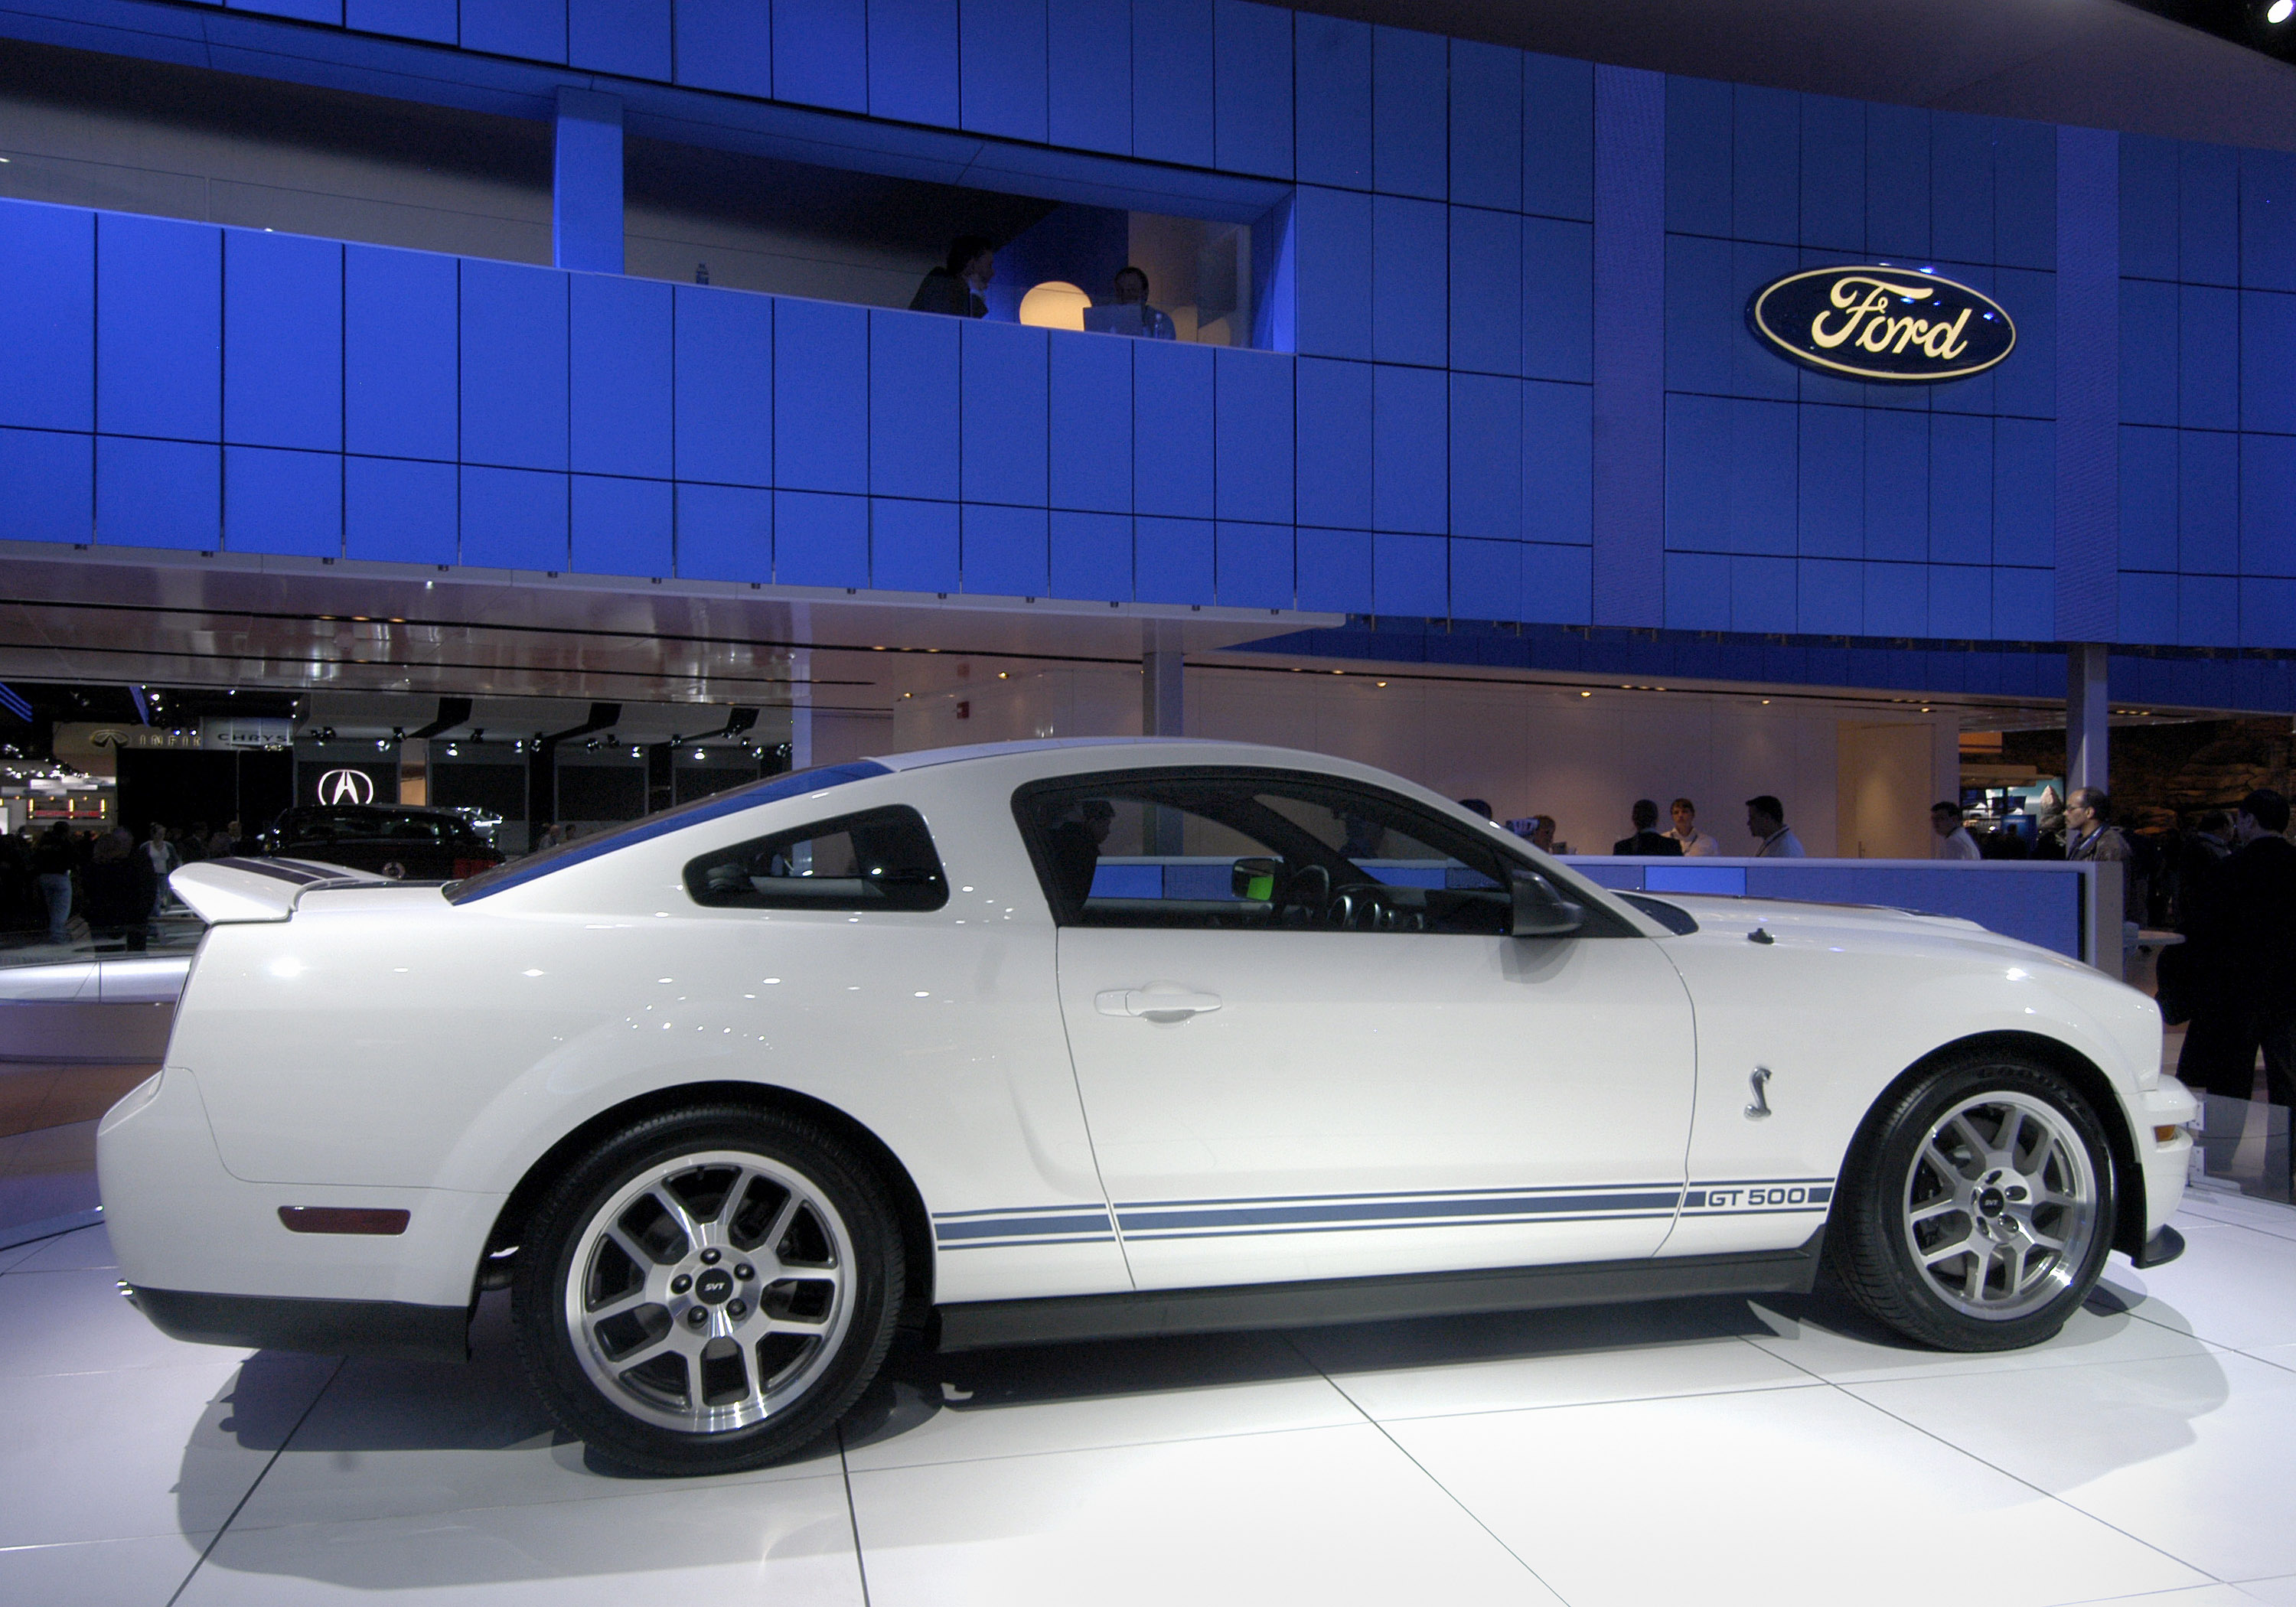 2007 ford mustang shelby gt500 top speed 2007 ford mustang shelby gt500 top speed car blueprint in hd new muscle blueprints download